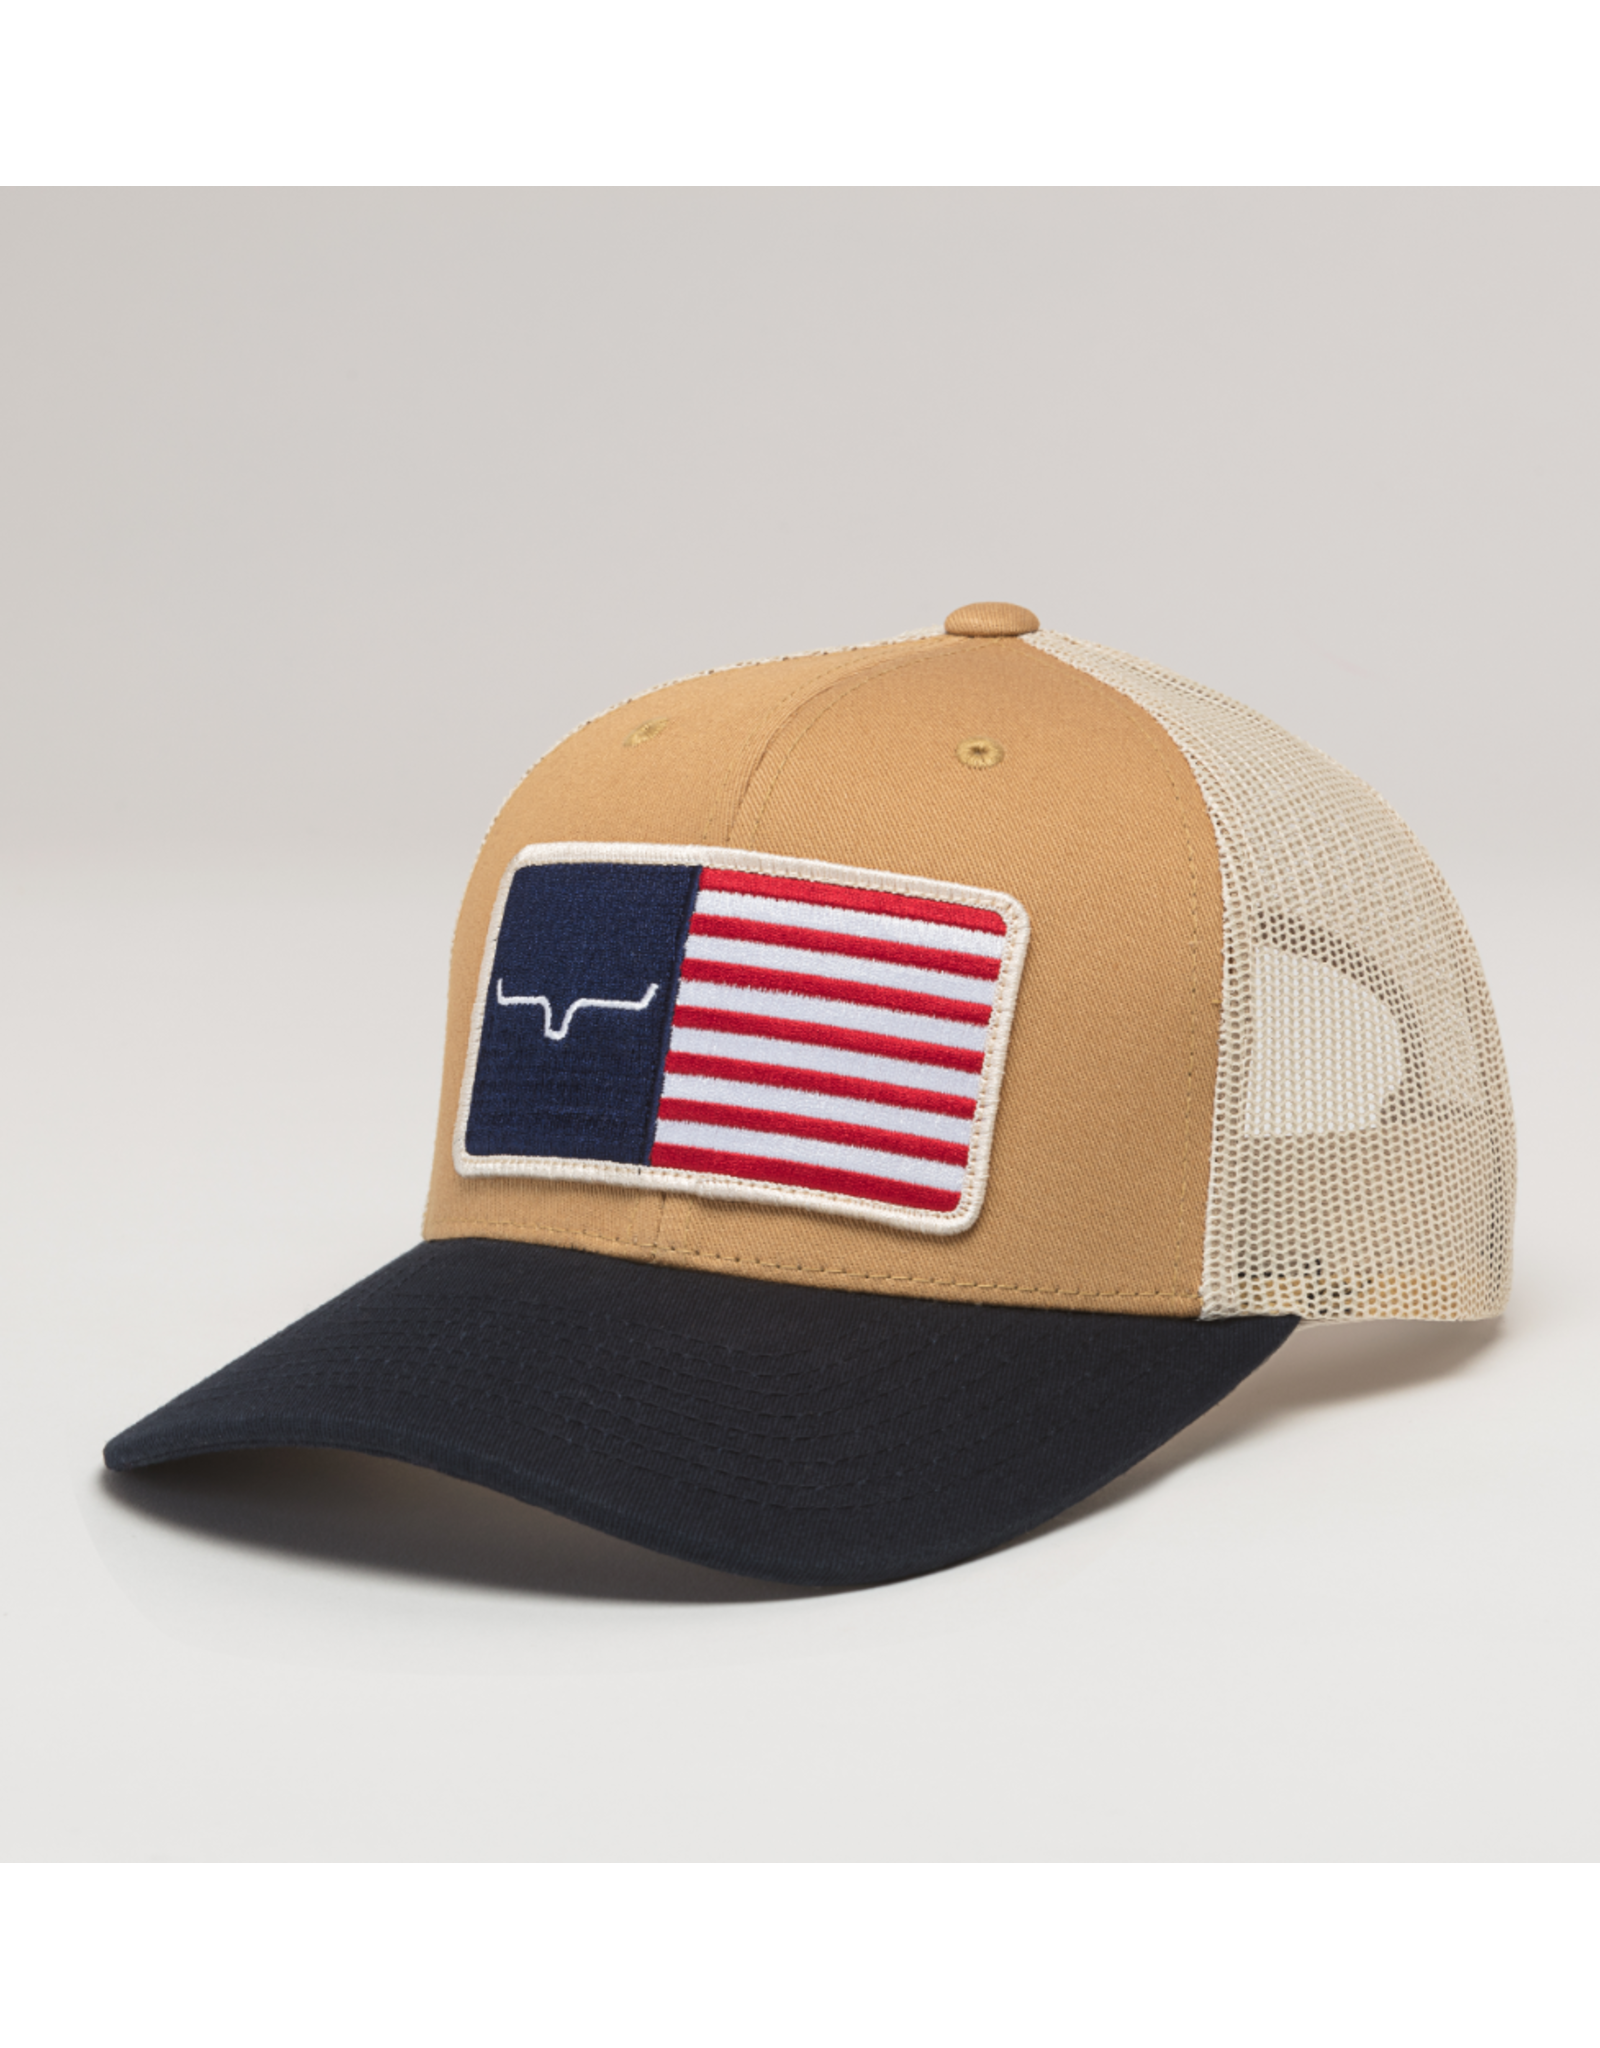 Kimes Ranch Kimes Ranch American Trucker Cap, WW Brown/Navy